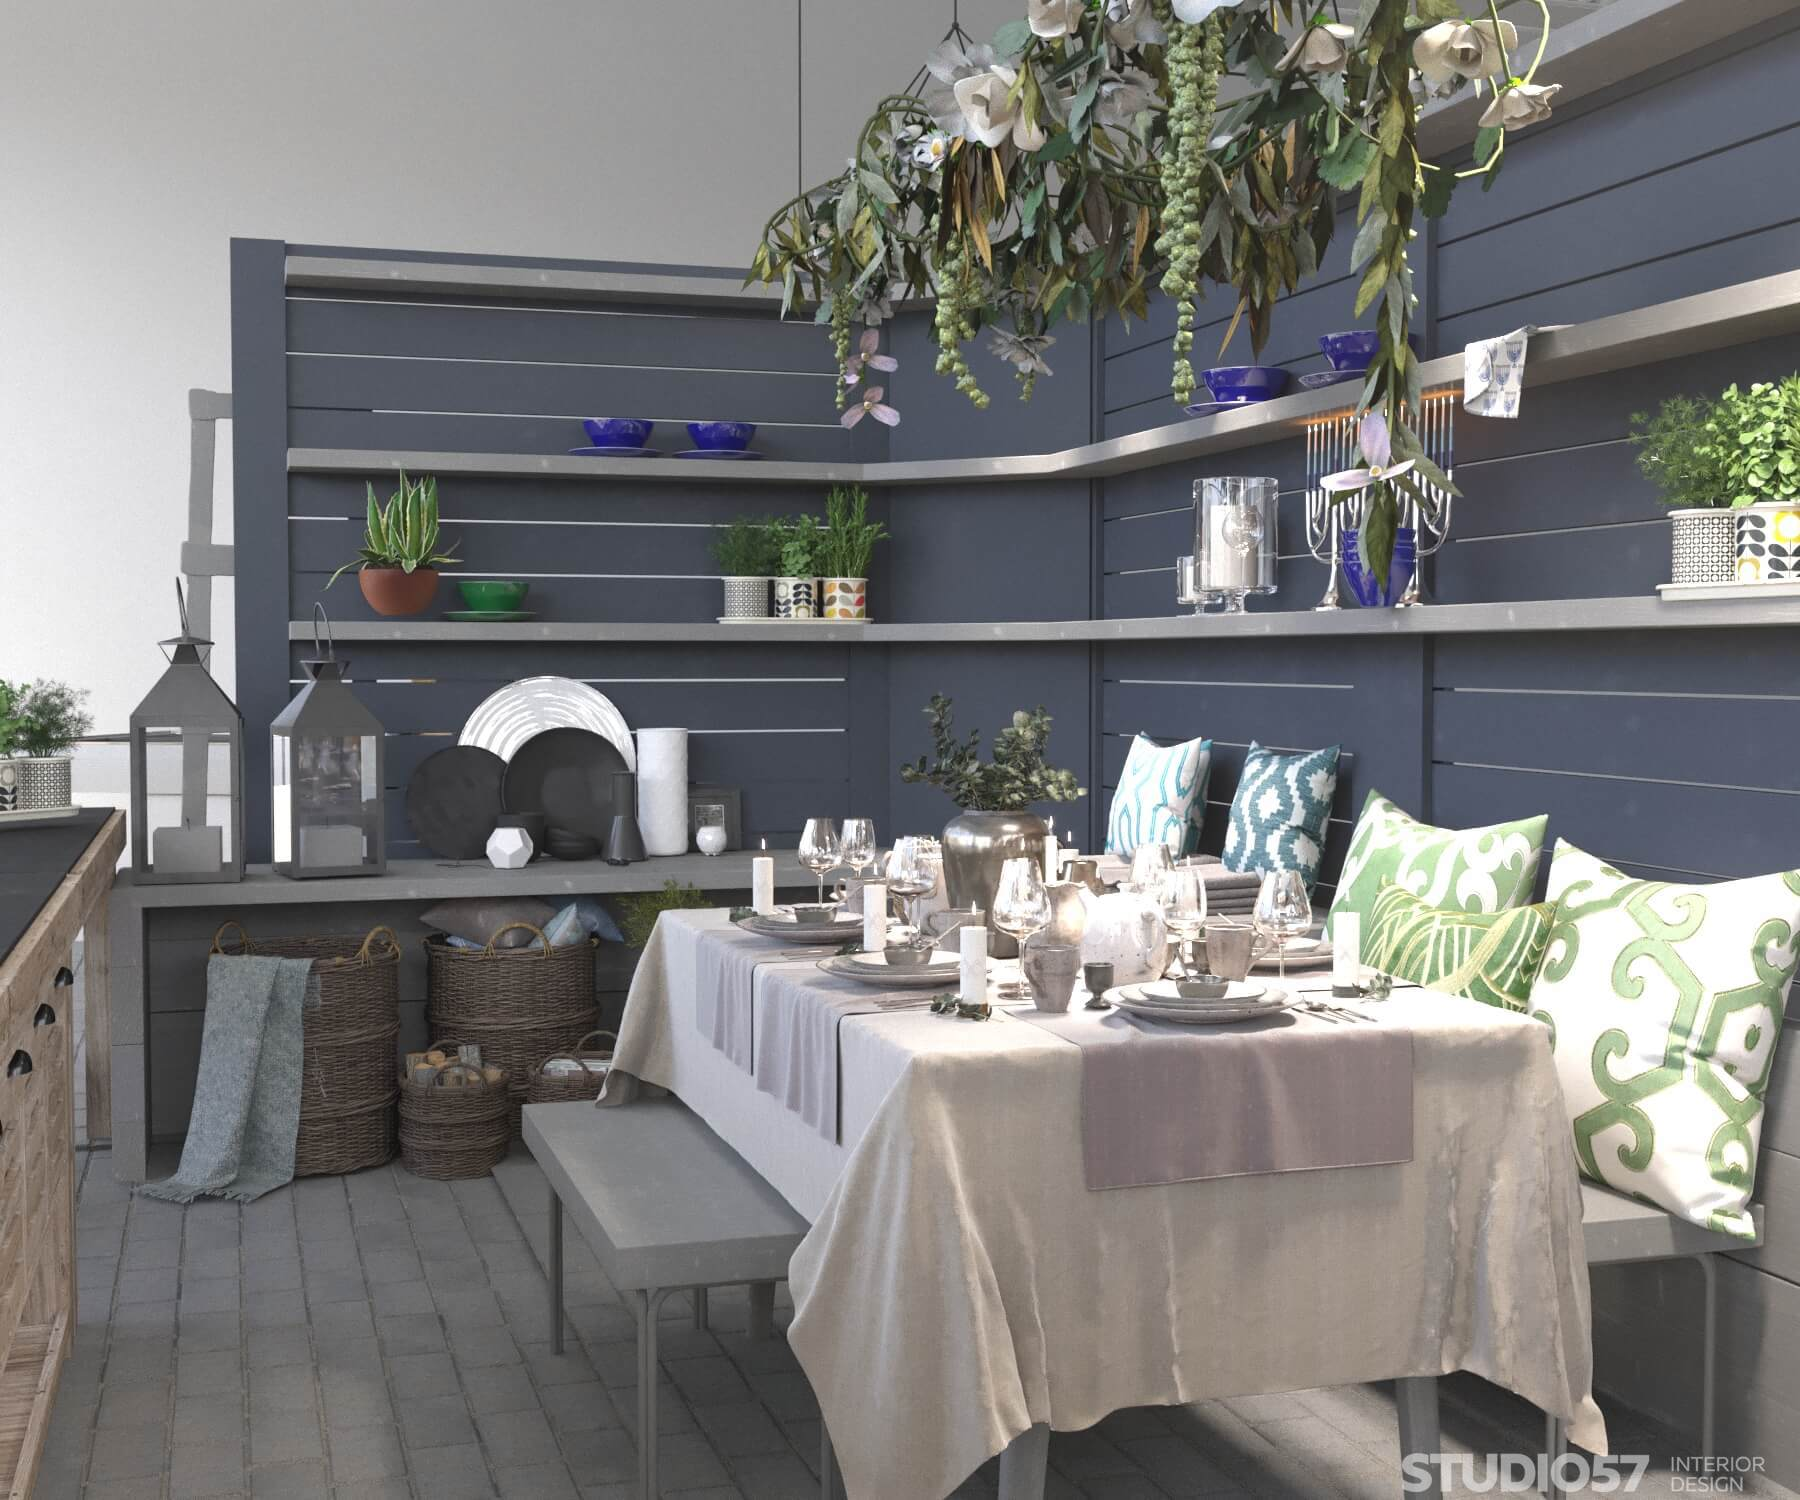 Provence style in store design